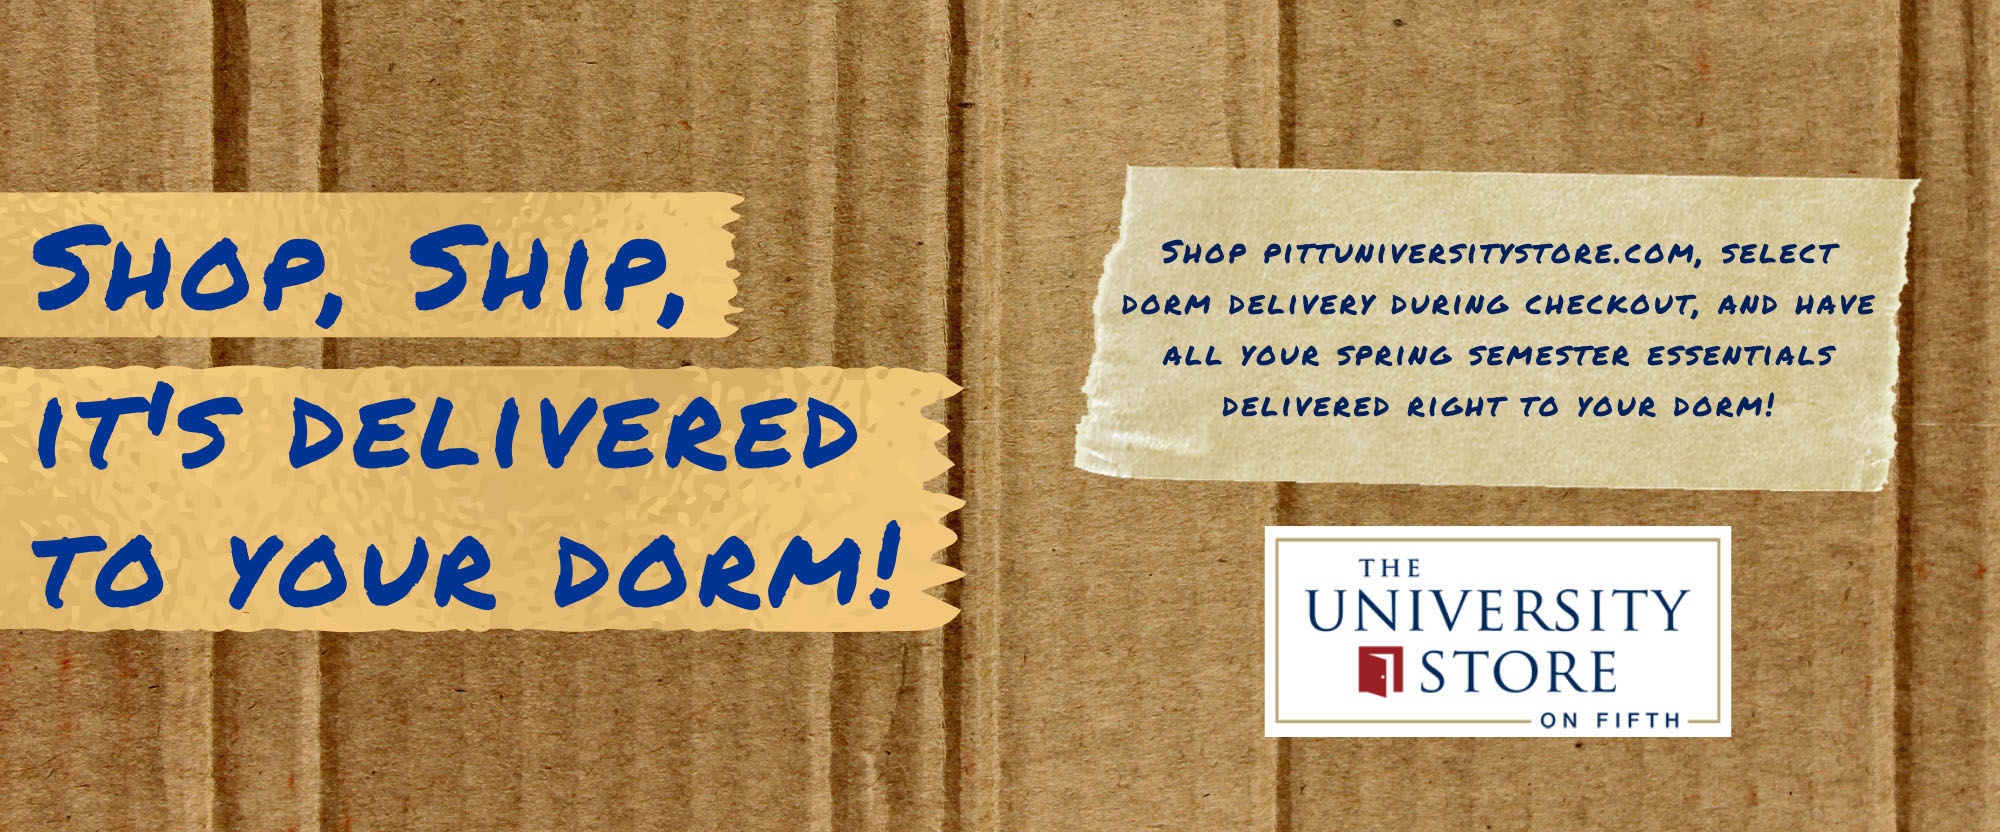 get free delivery to your residence hall